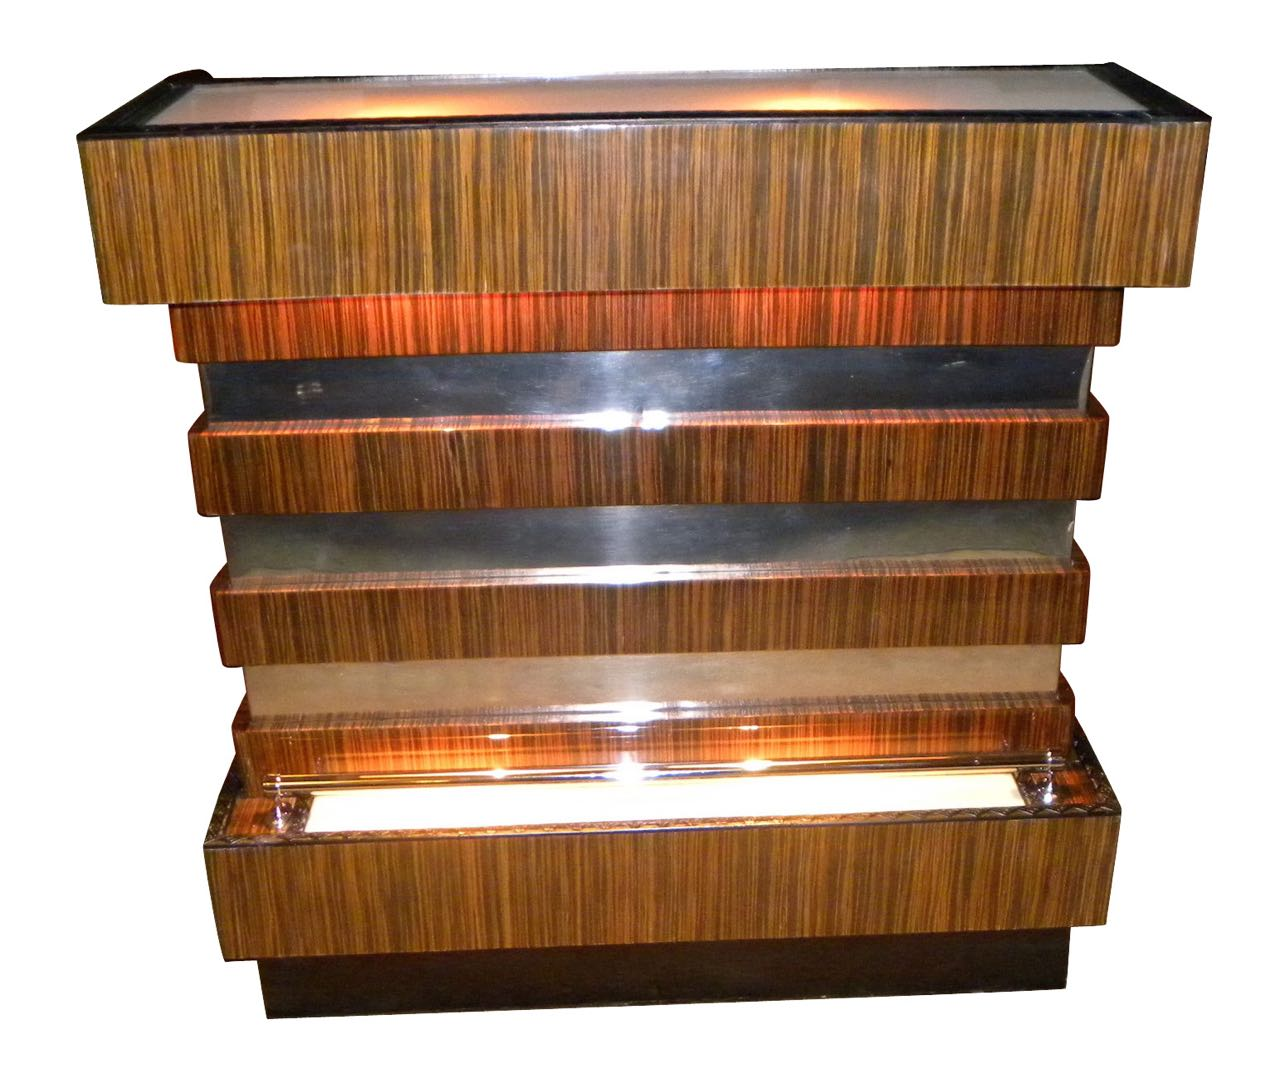 Barschrank Design Art Deco Furniture For Sale Bars Art Deco Collection